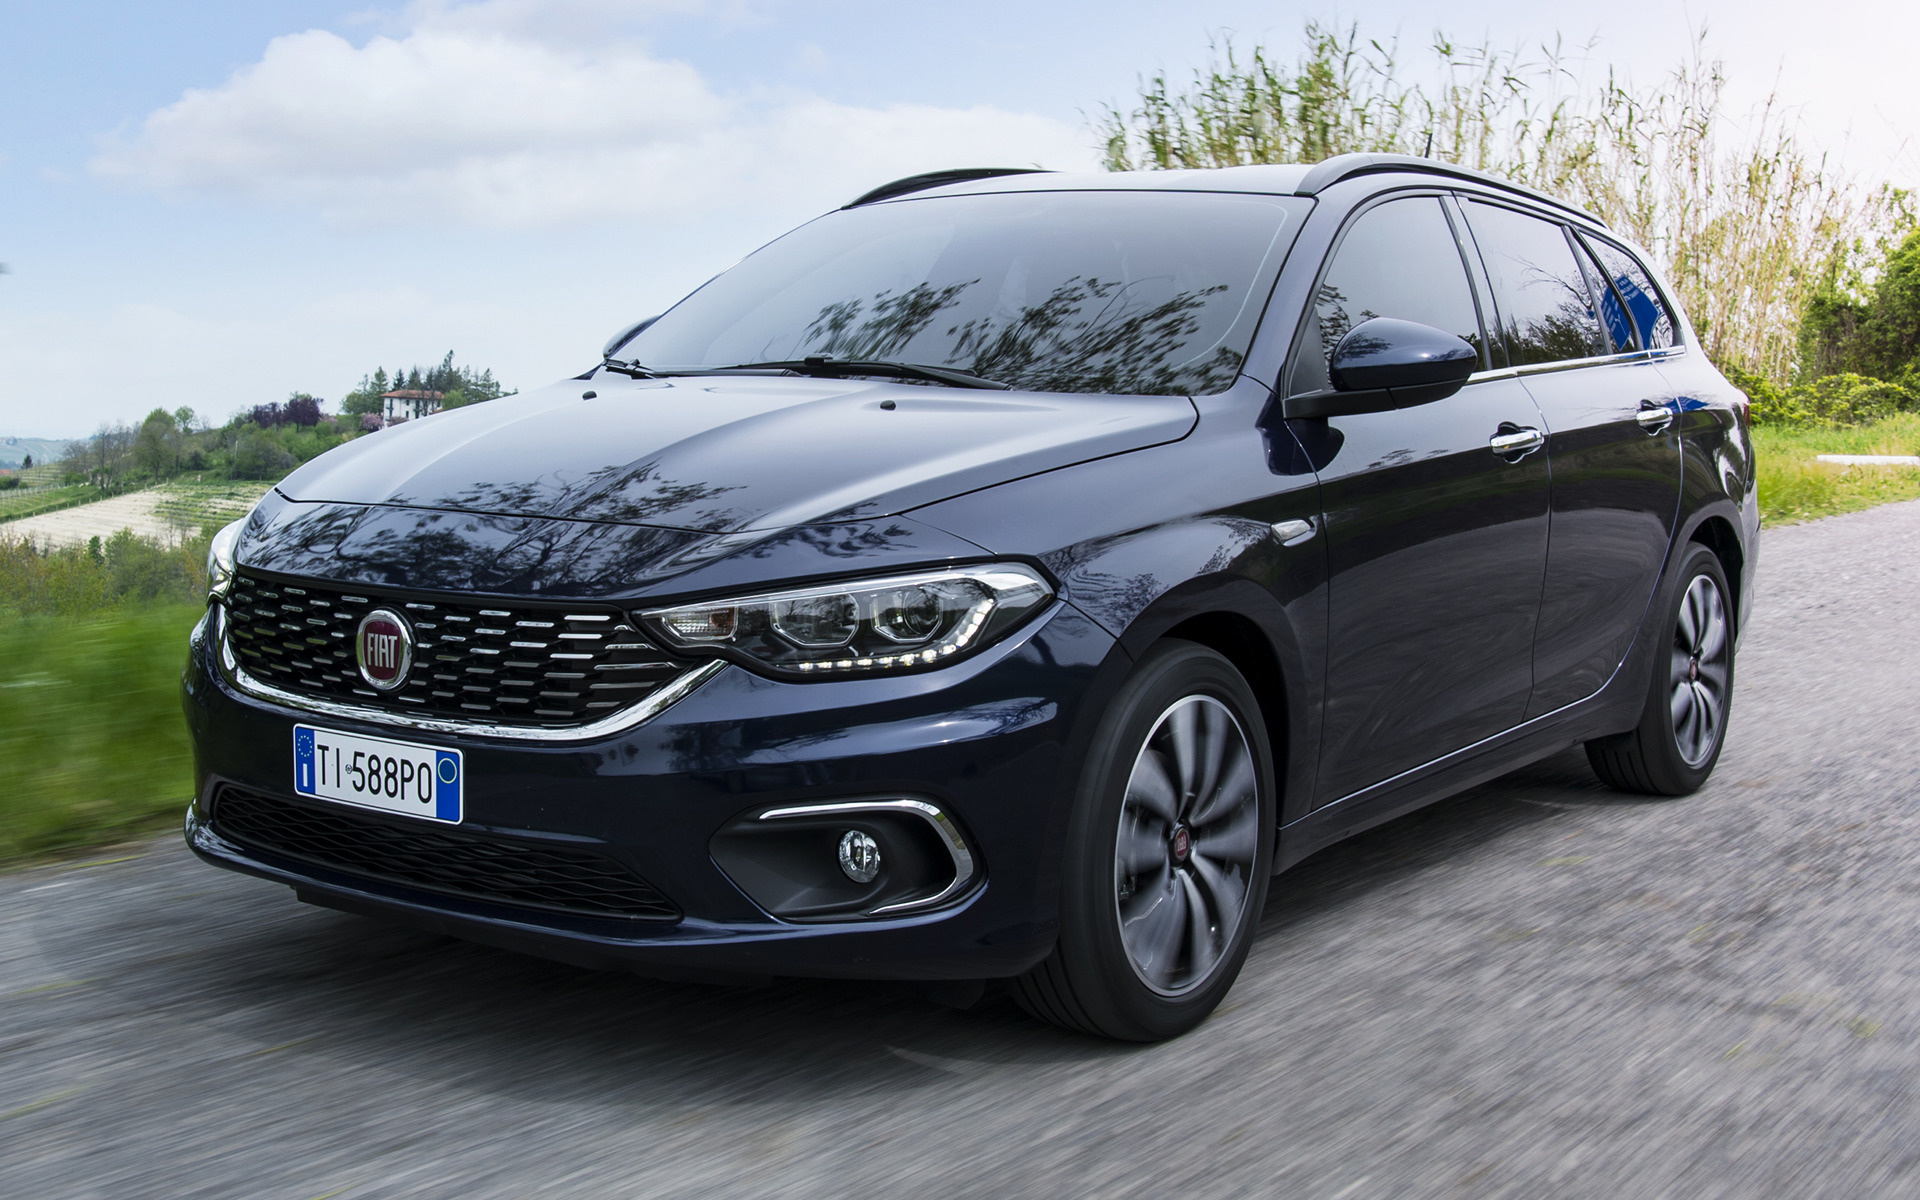 Fiat Tipo Station Wagon 2016 Wallpapers And Hd Images